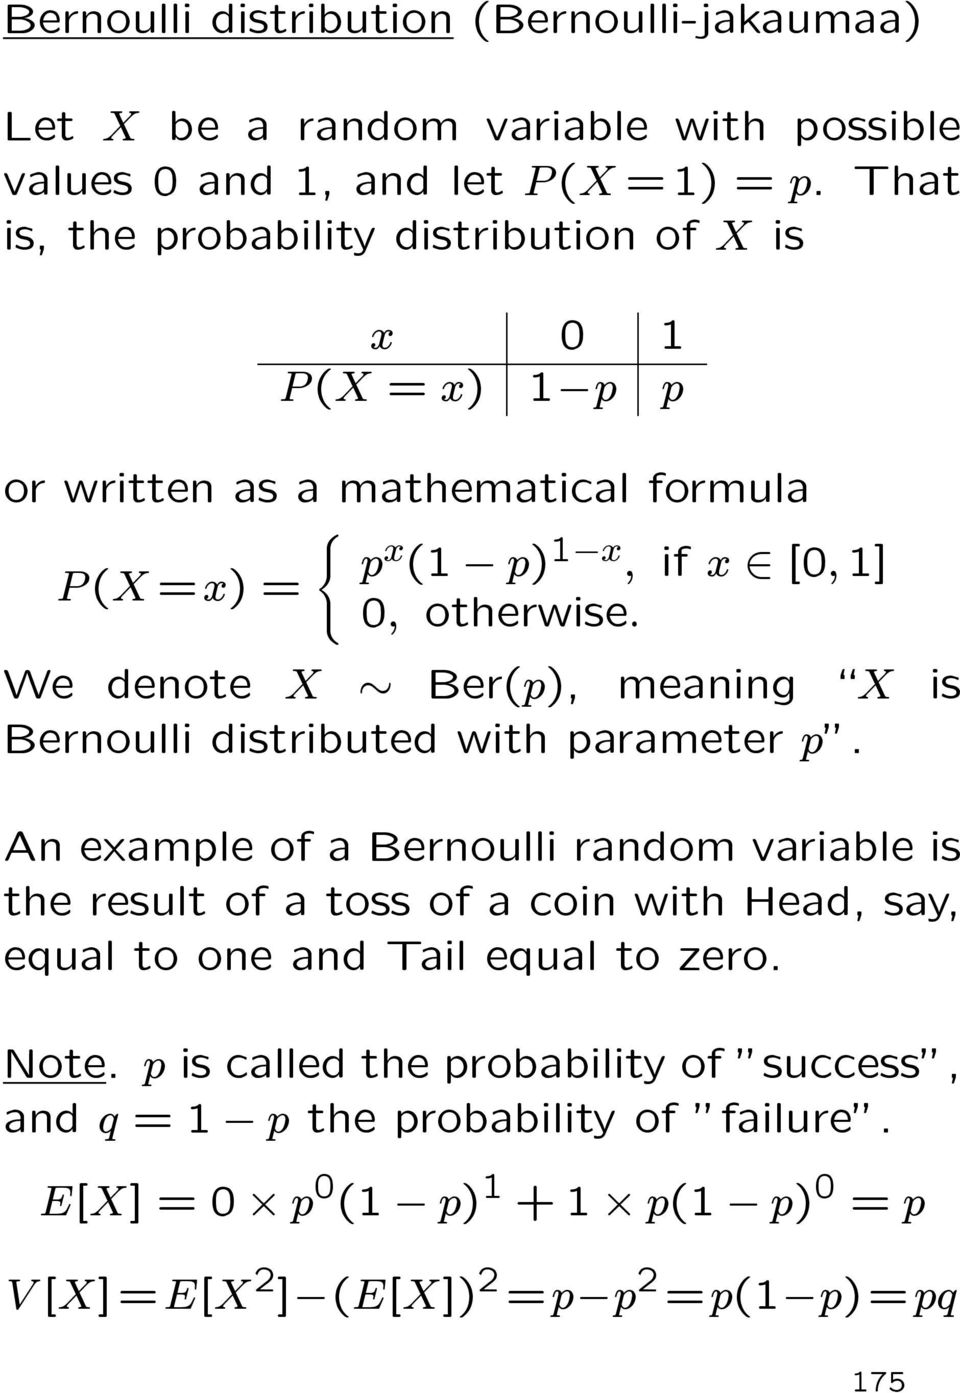 "We denote X Ber(p), meaning \X is Bernoulli distributed with parameter p""."